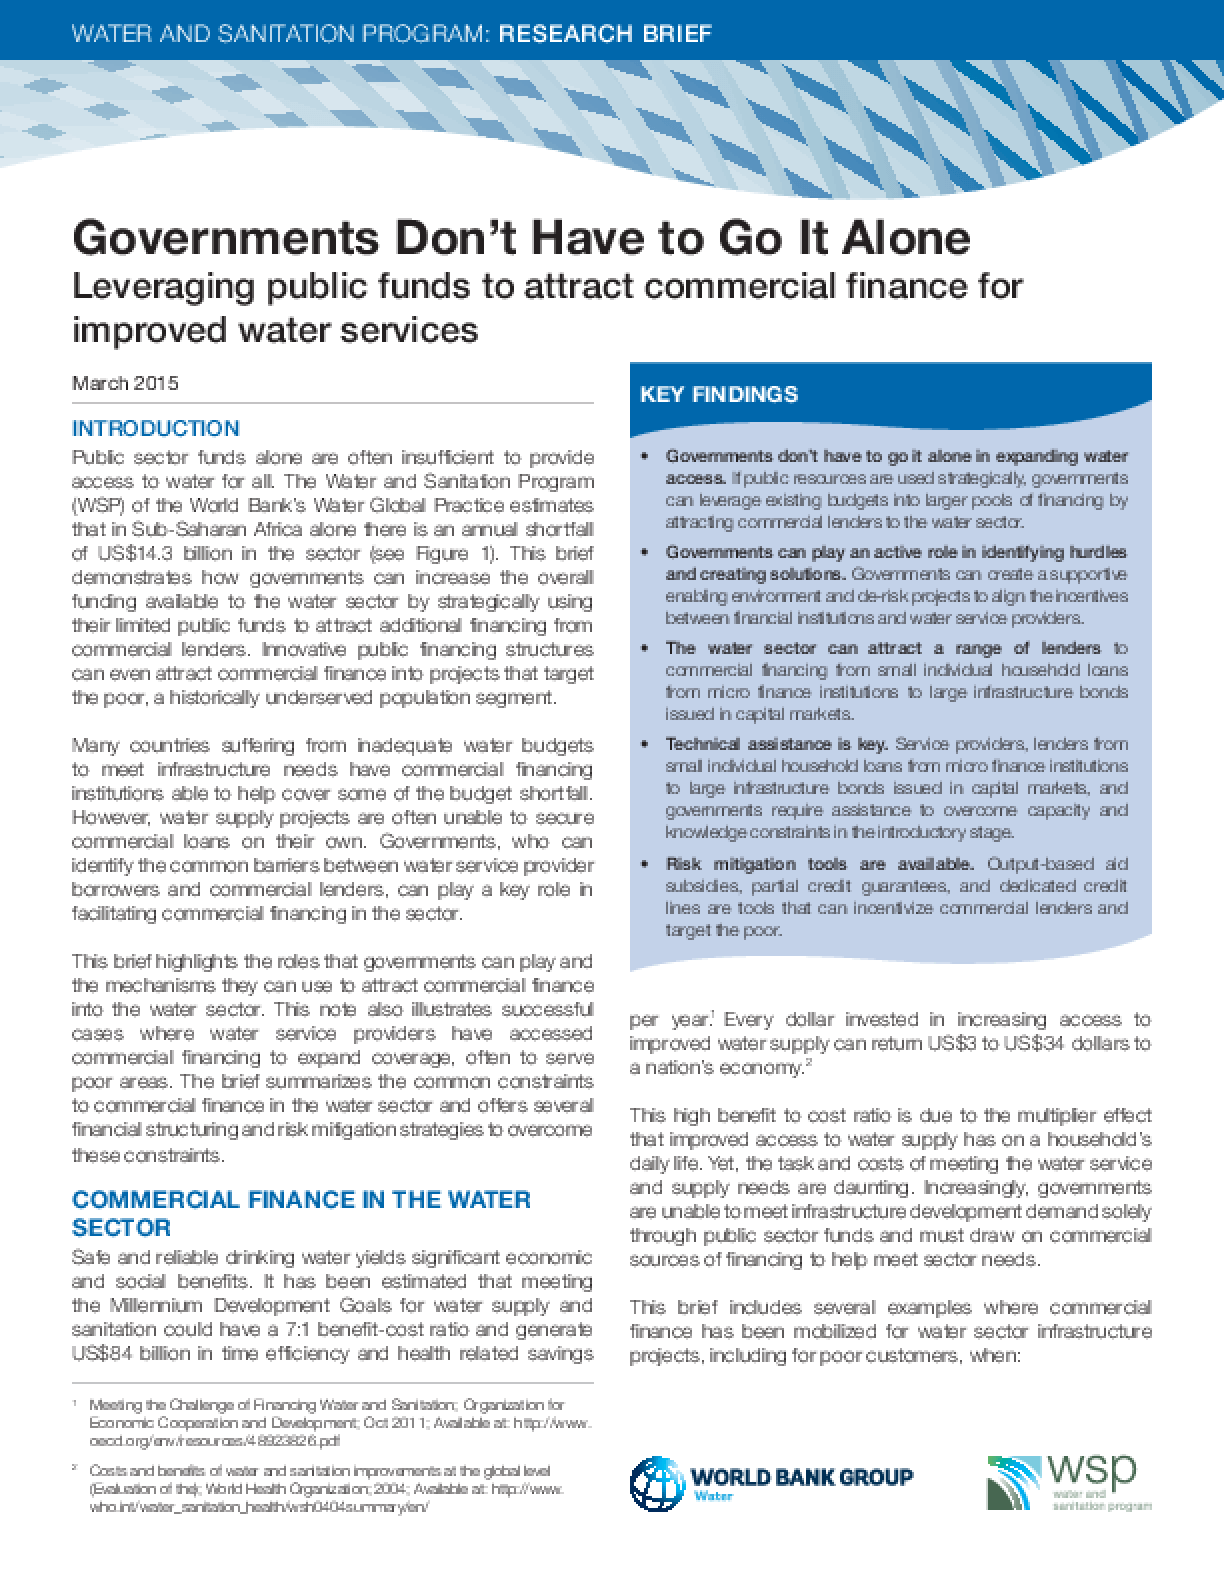 Governments Don't Have to Go It Alone: Leveraging Public Funds to Attract Commercial Finance for Improved Water Services